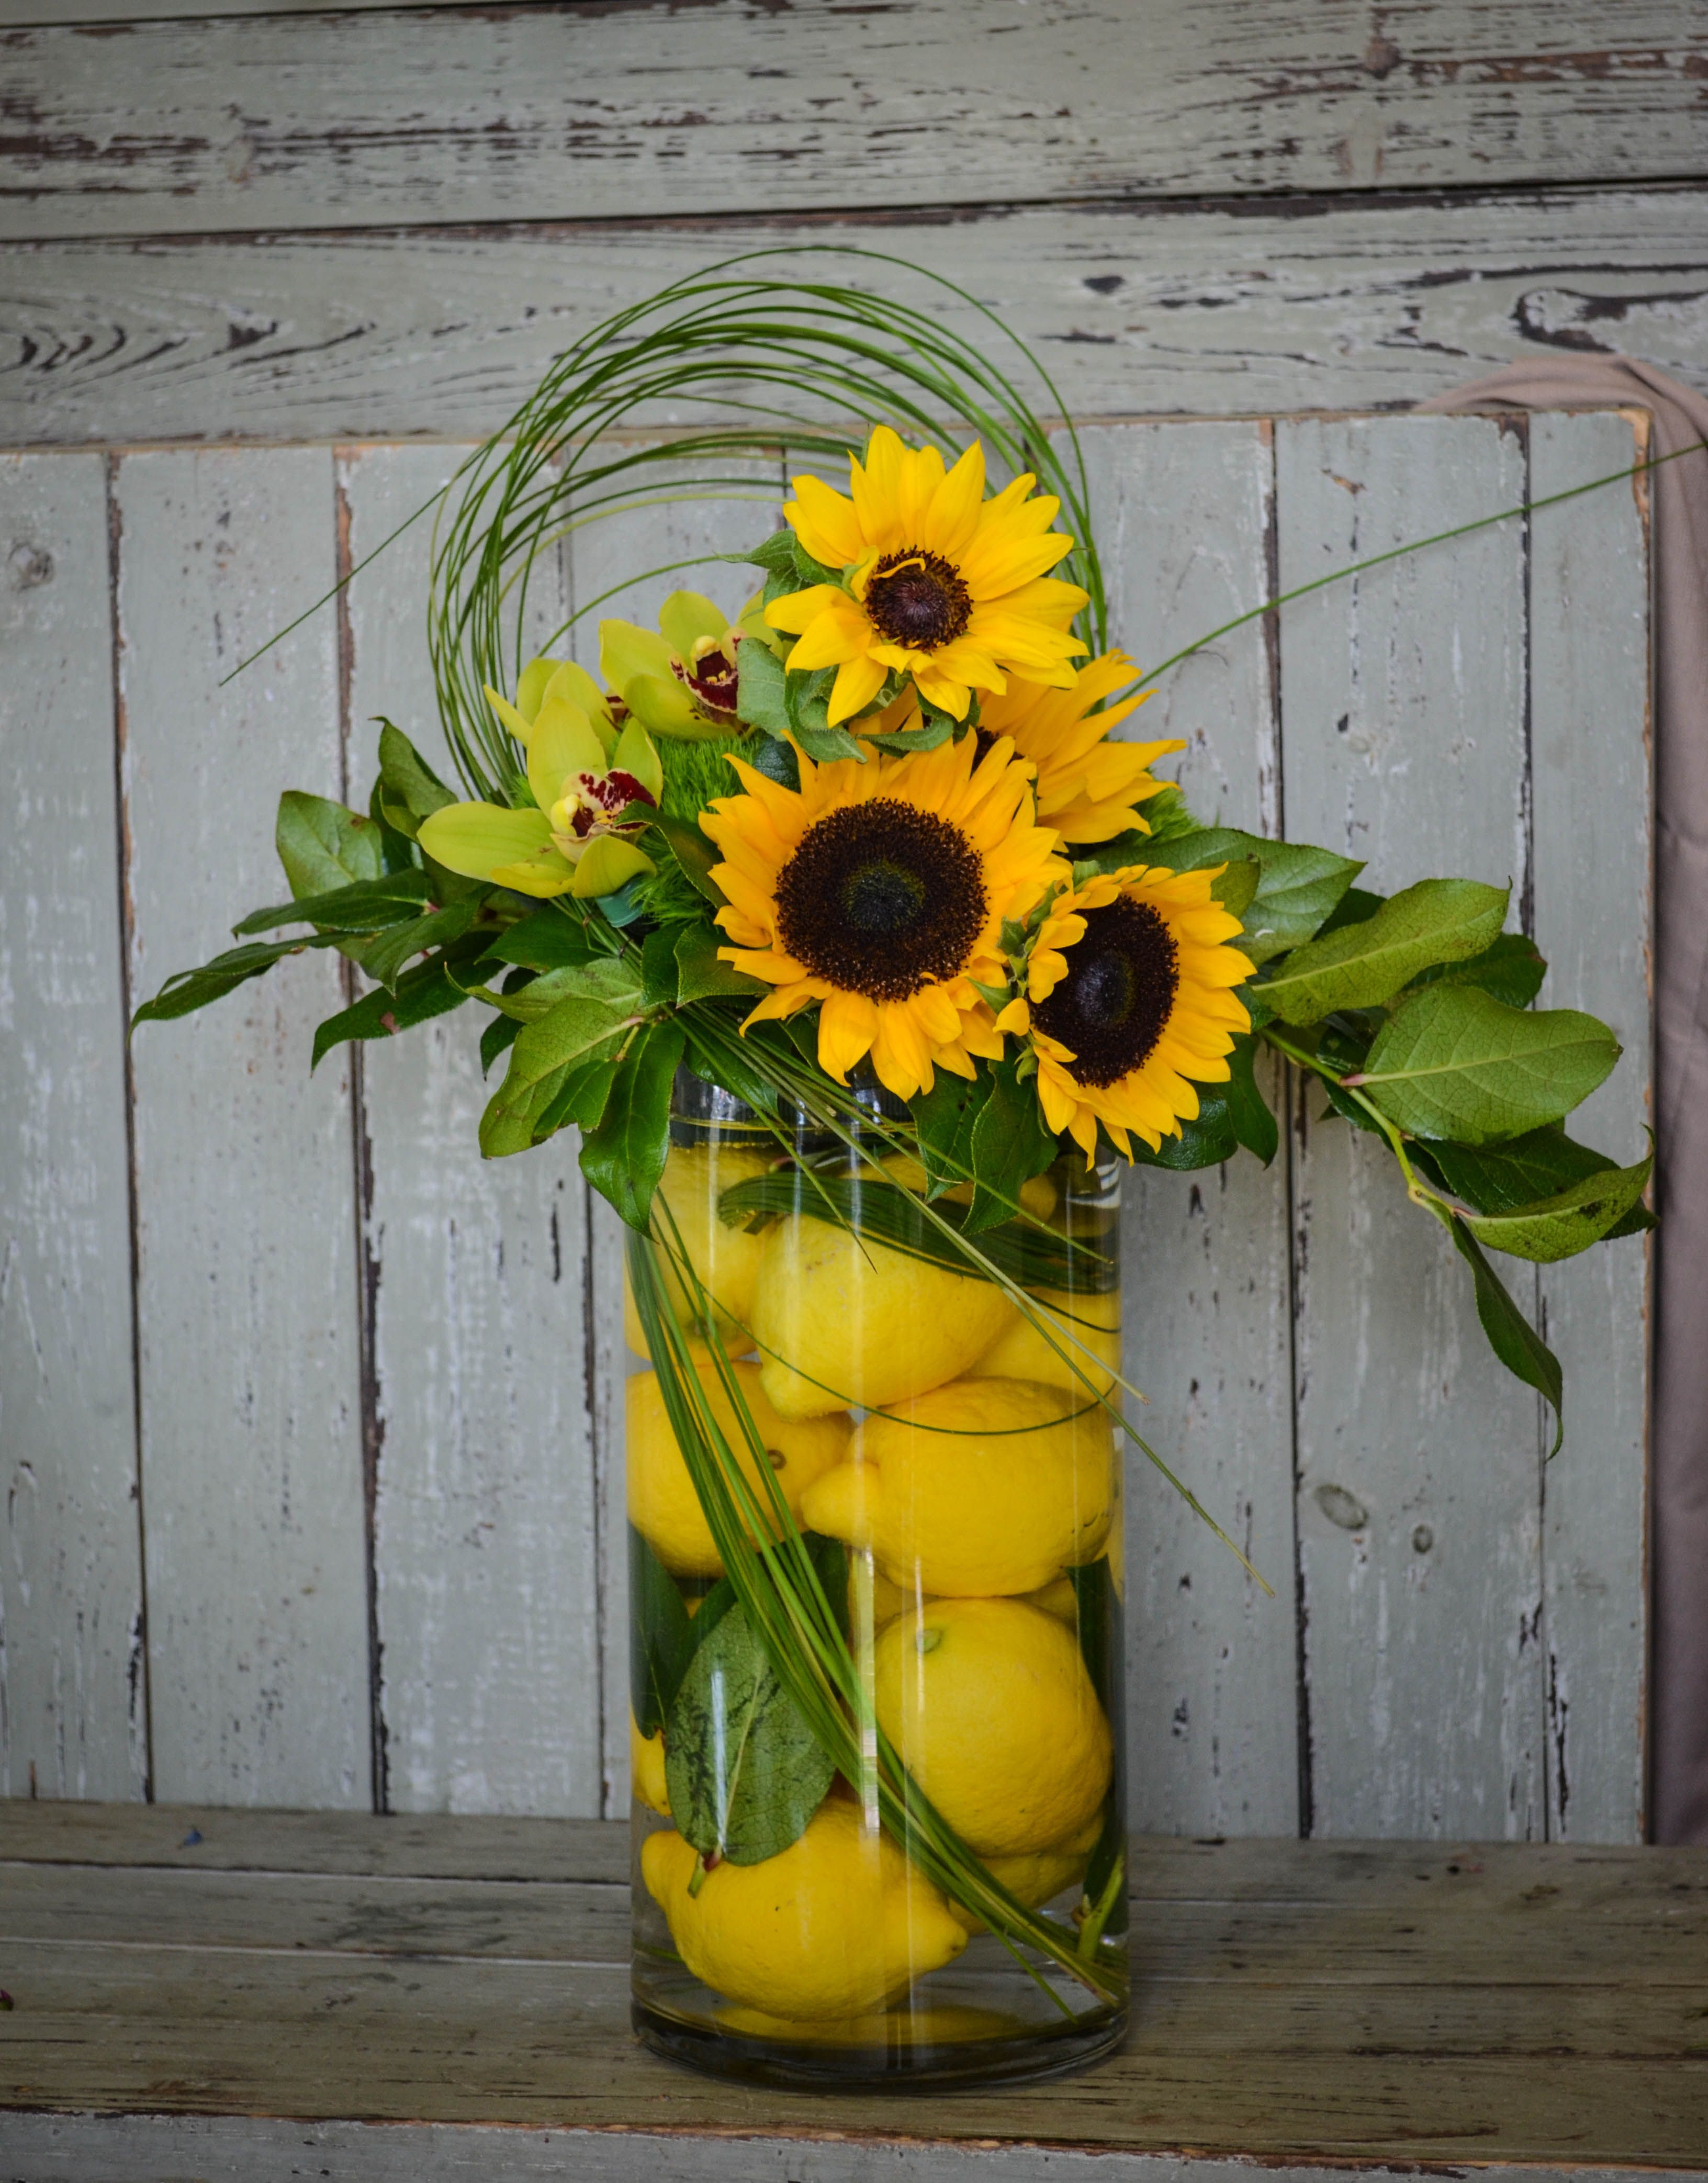 Citrus is in! Lemons, sunflowers and orchids with bear